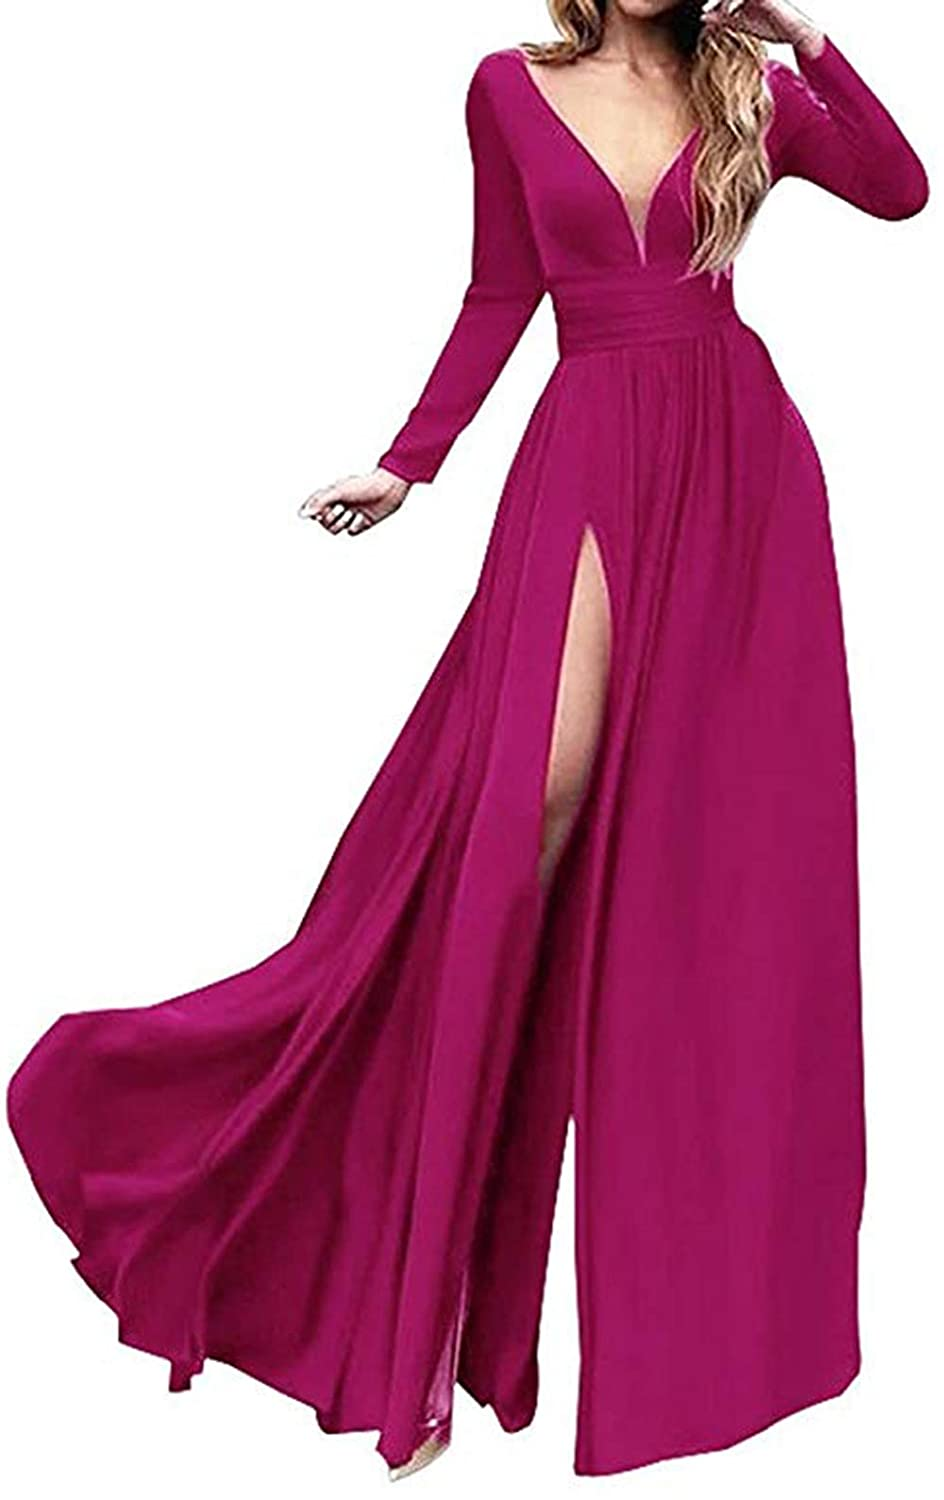 Fuchsia Ri Yun Women's Double VNeck Long Sleeve Prom Dresses Long 2019 Side Slit Formal Evening Ball Gowns